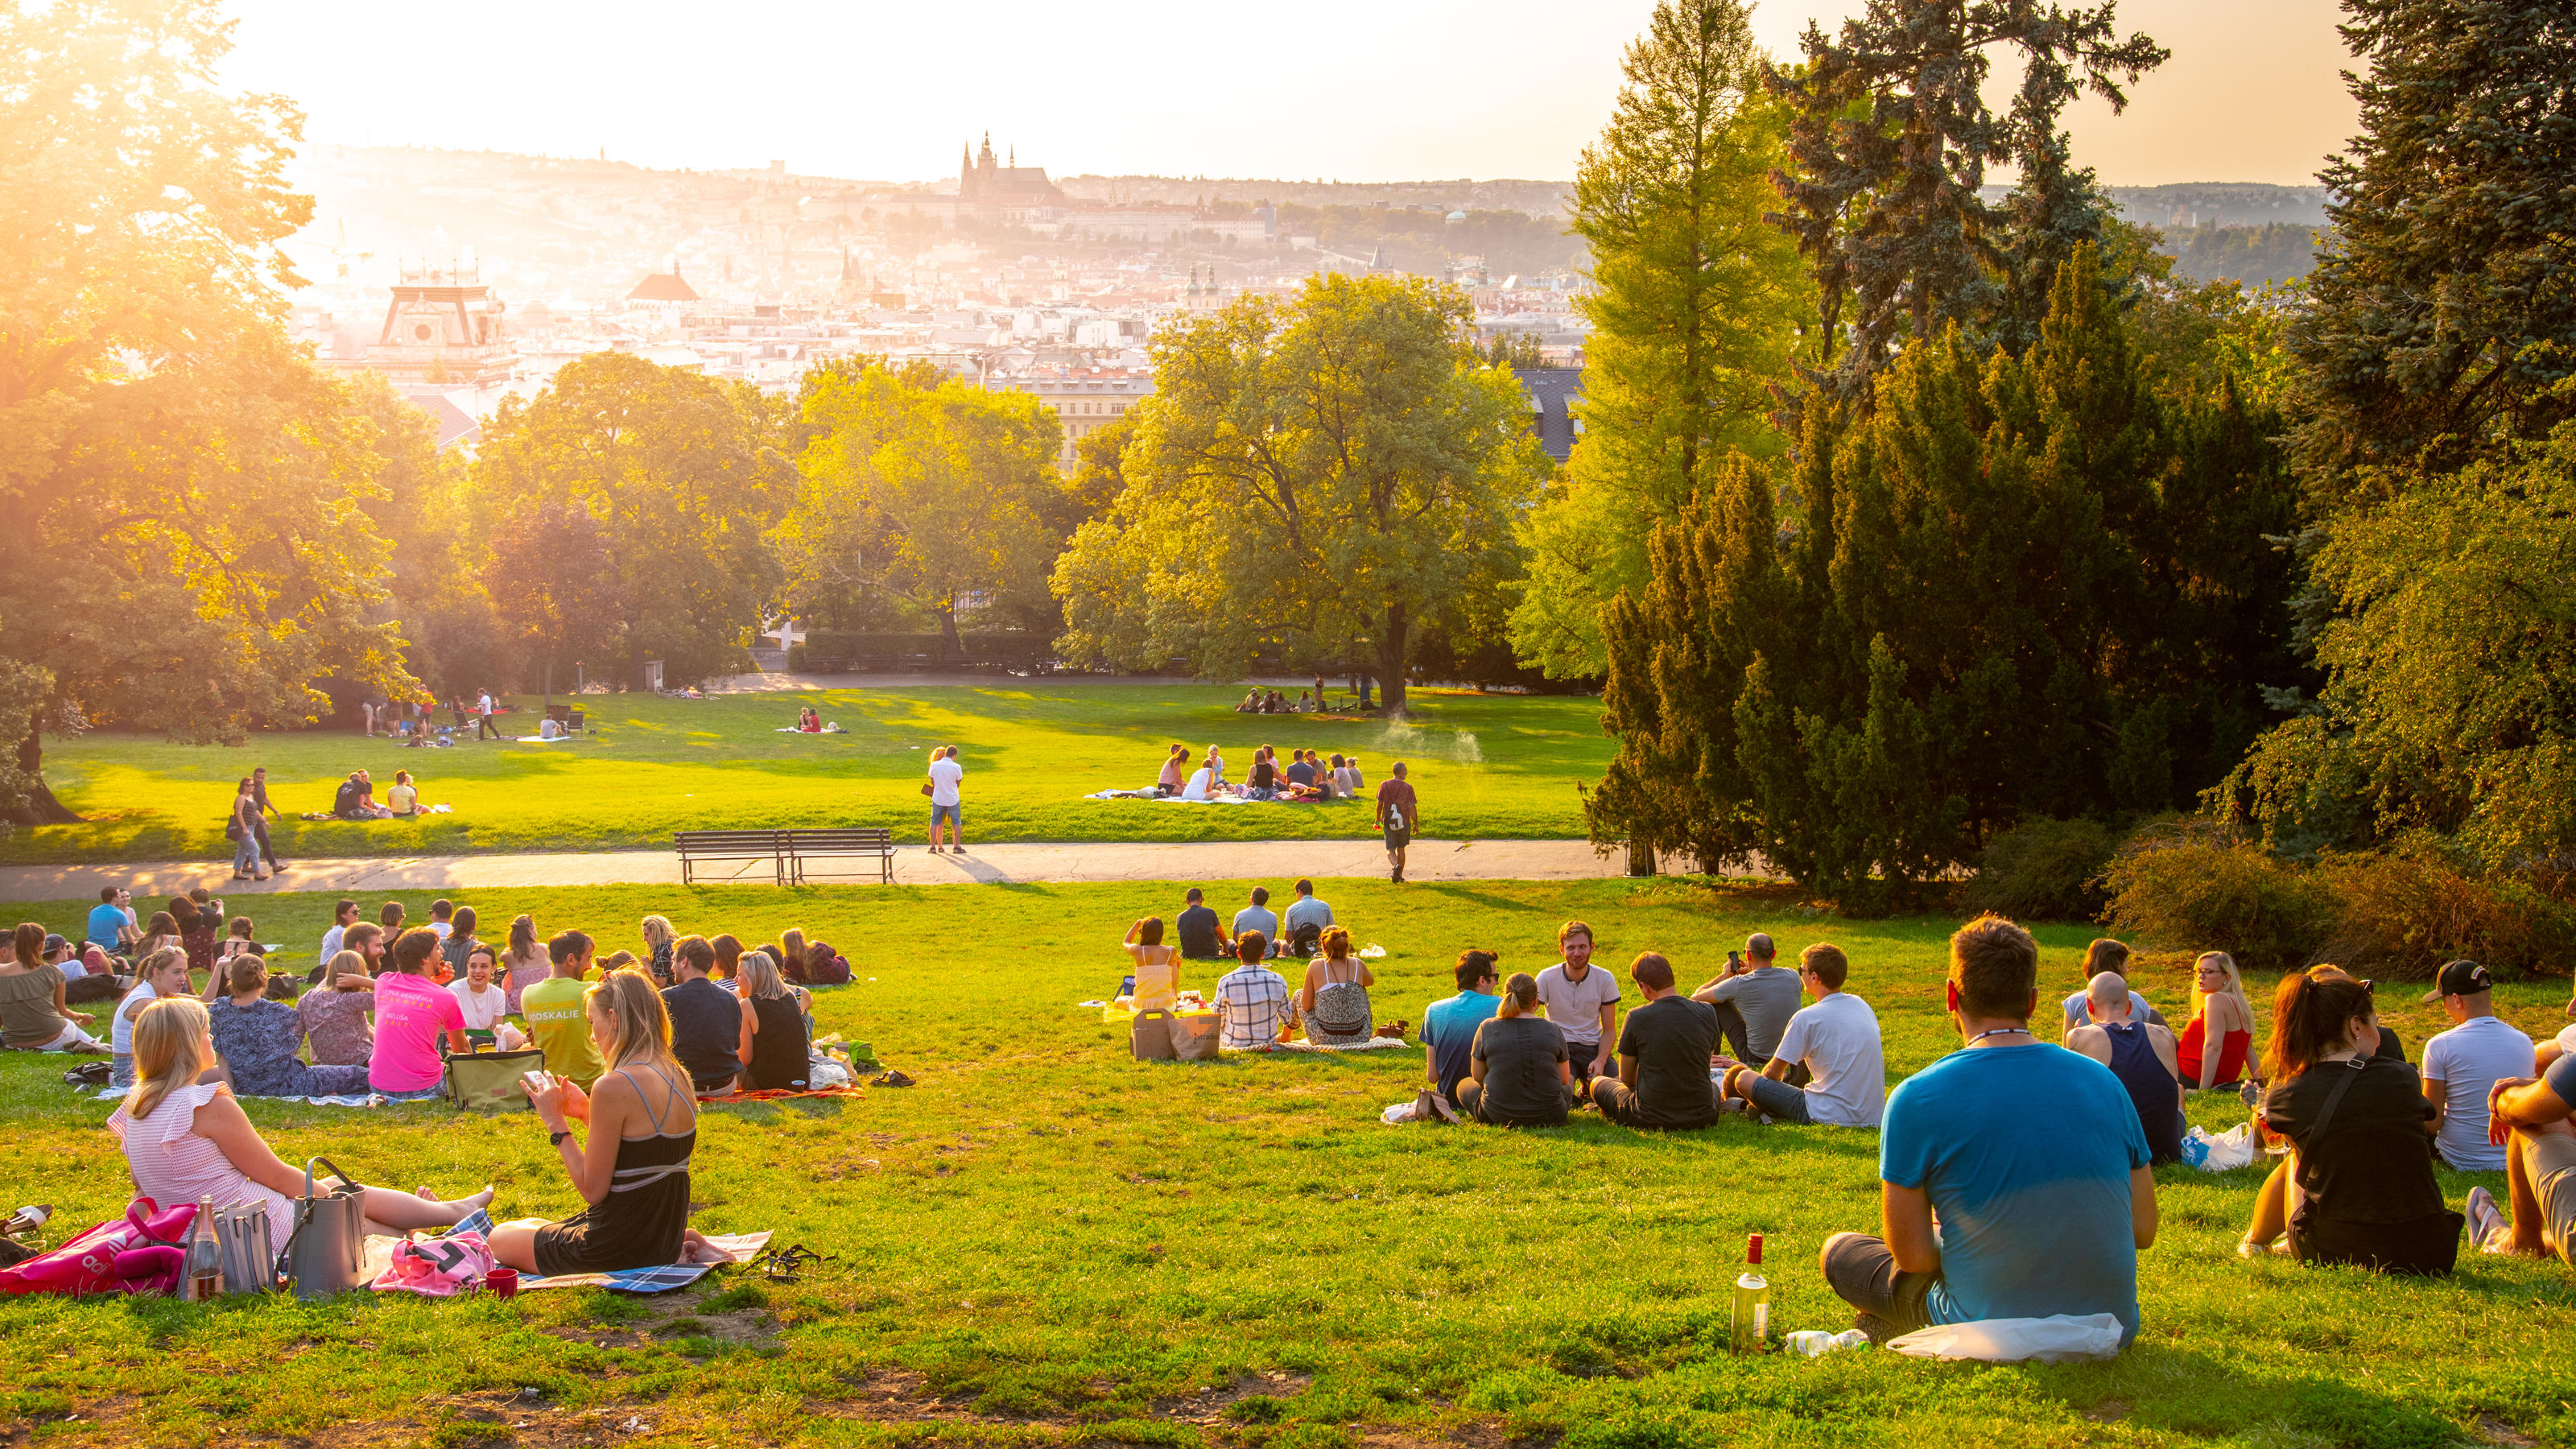 PRAGUE, CZECH REPUBLIC - AUGUST 17, 2018: Sunset in Rieger Gardens, Riegrovy sady, in Prague. Many people sitting in the grass and enjoying sunny summer evening and lookout of Prague historical city centre. Czech Republic.